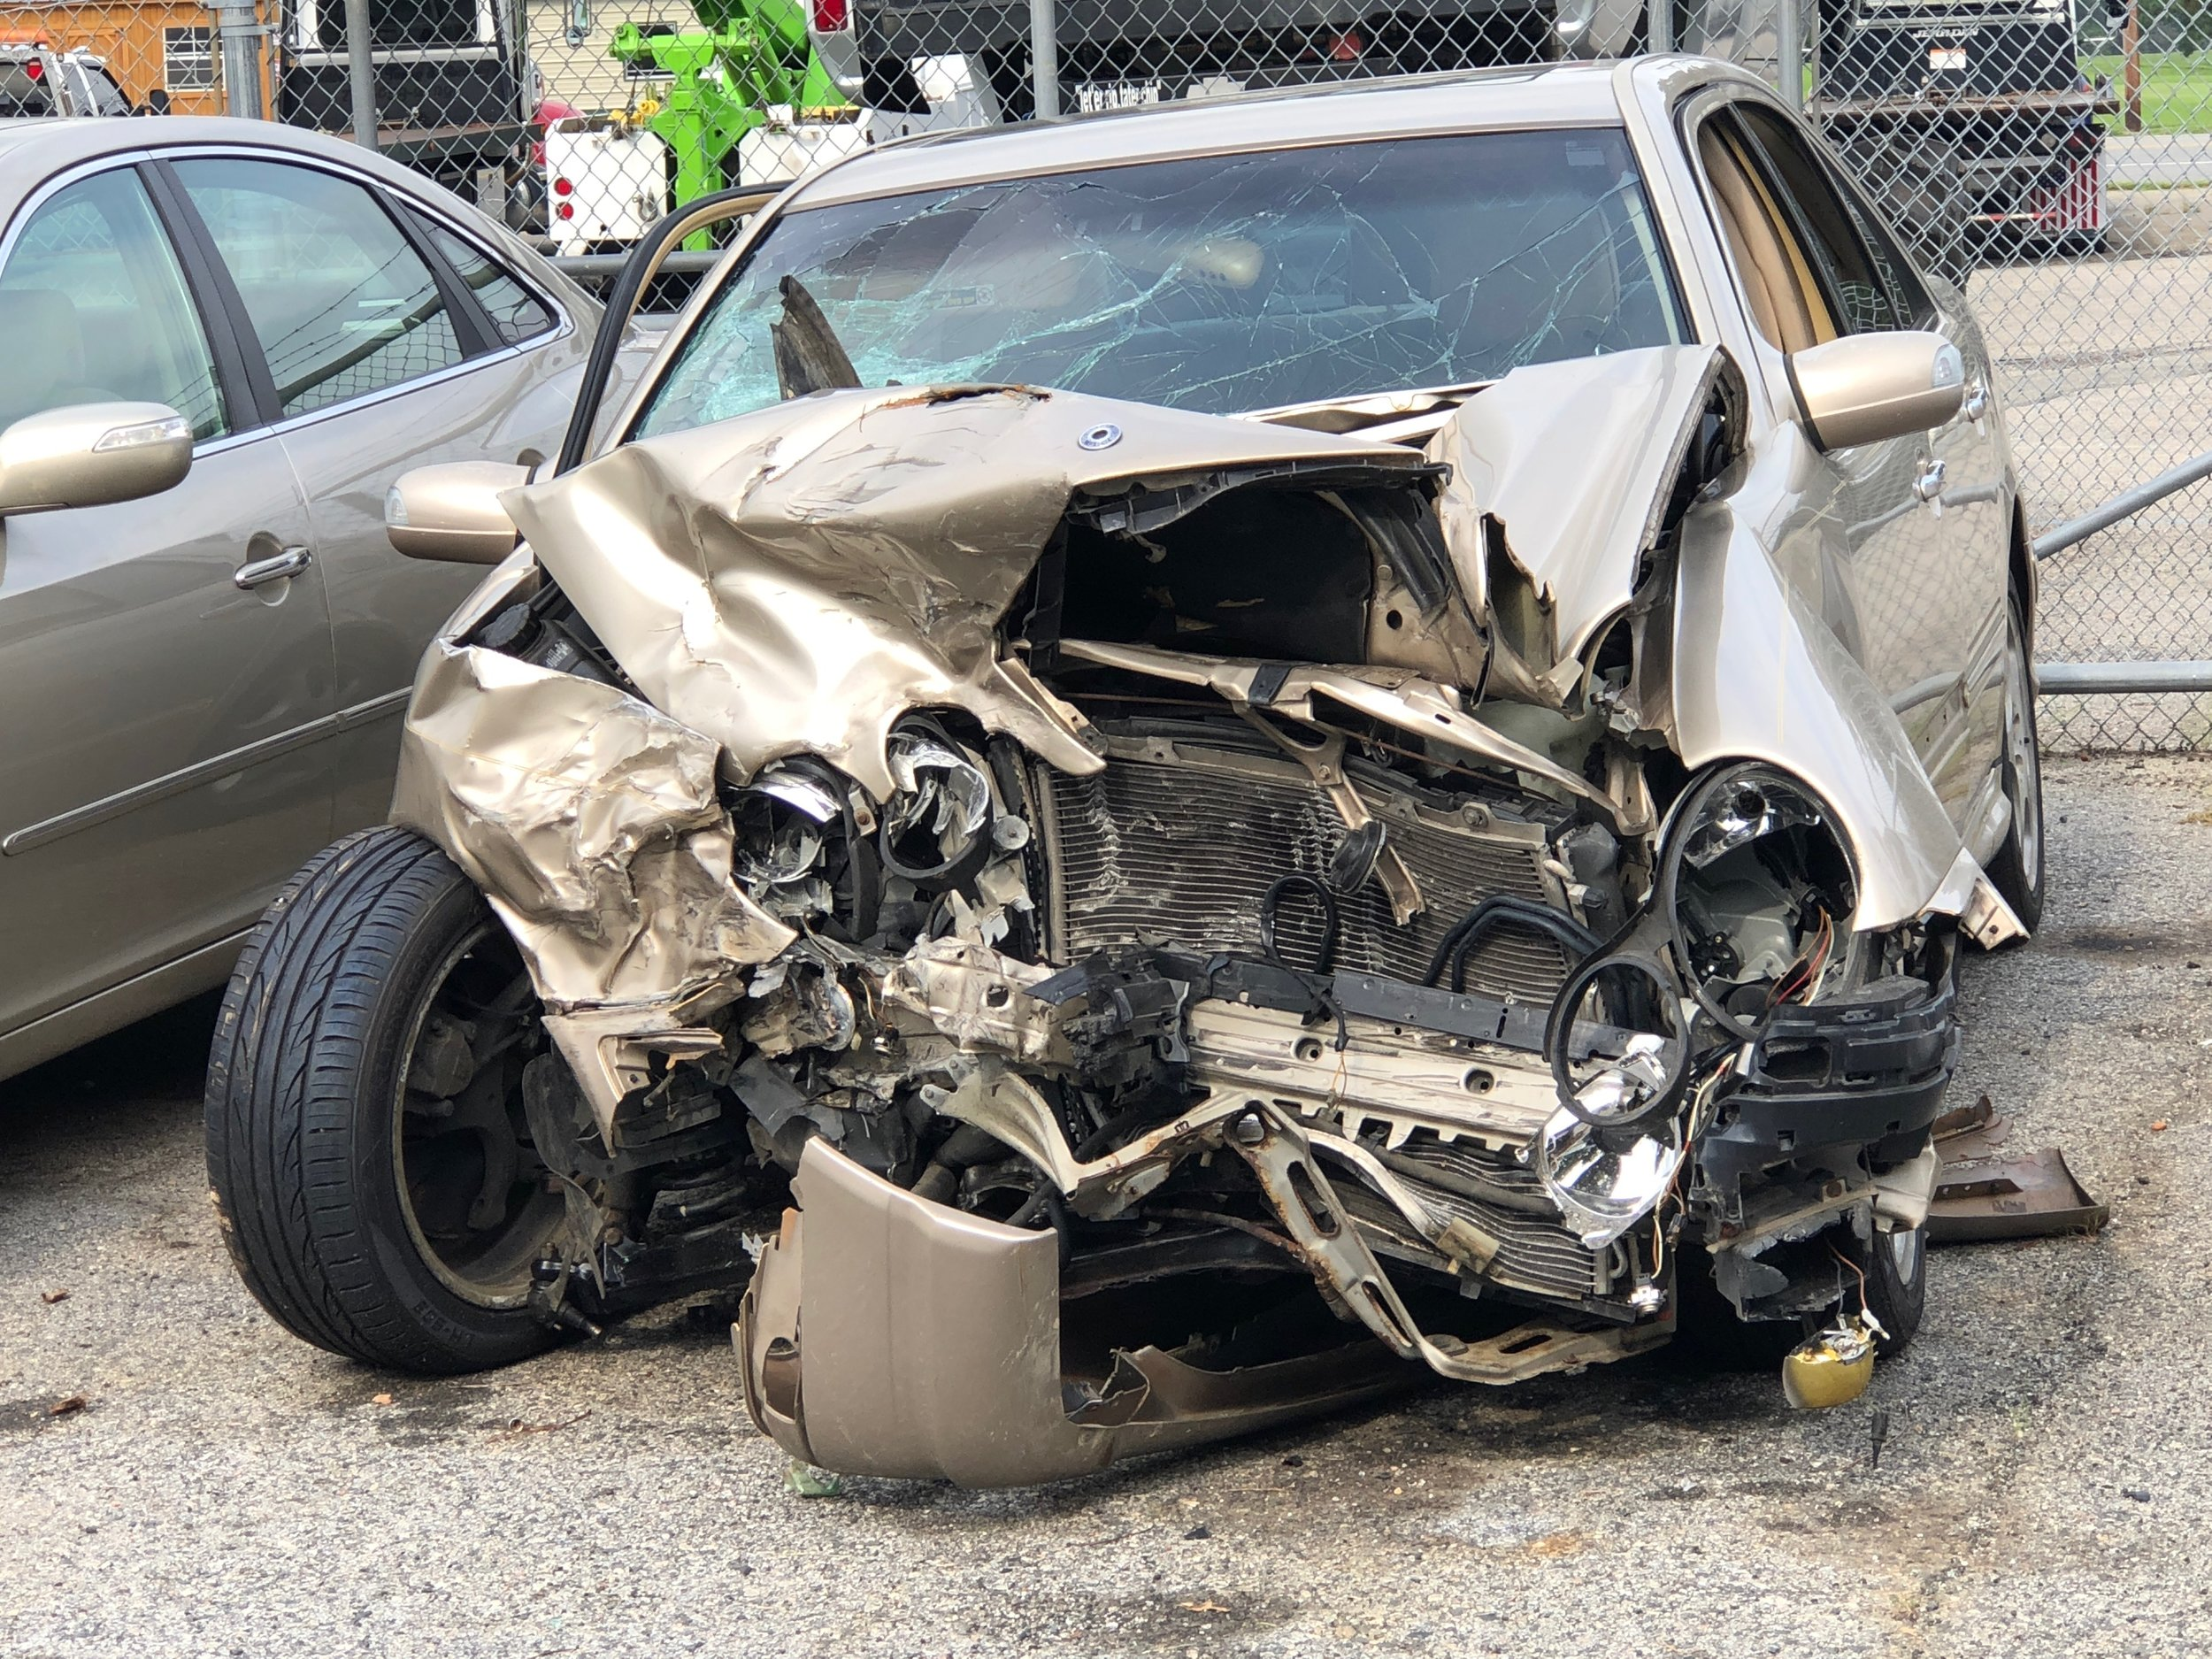 The car that hit Heather's car, also at the wrecker